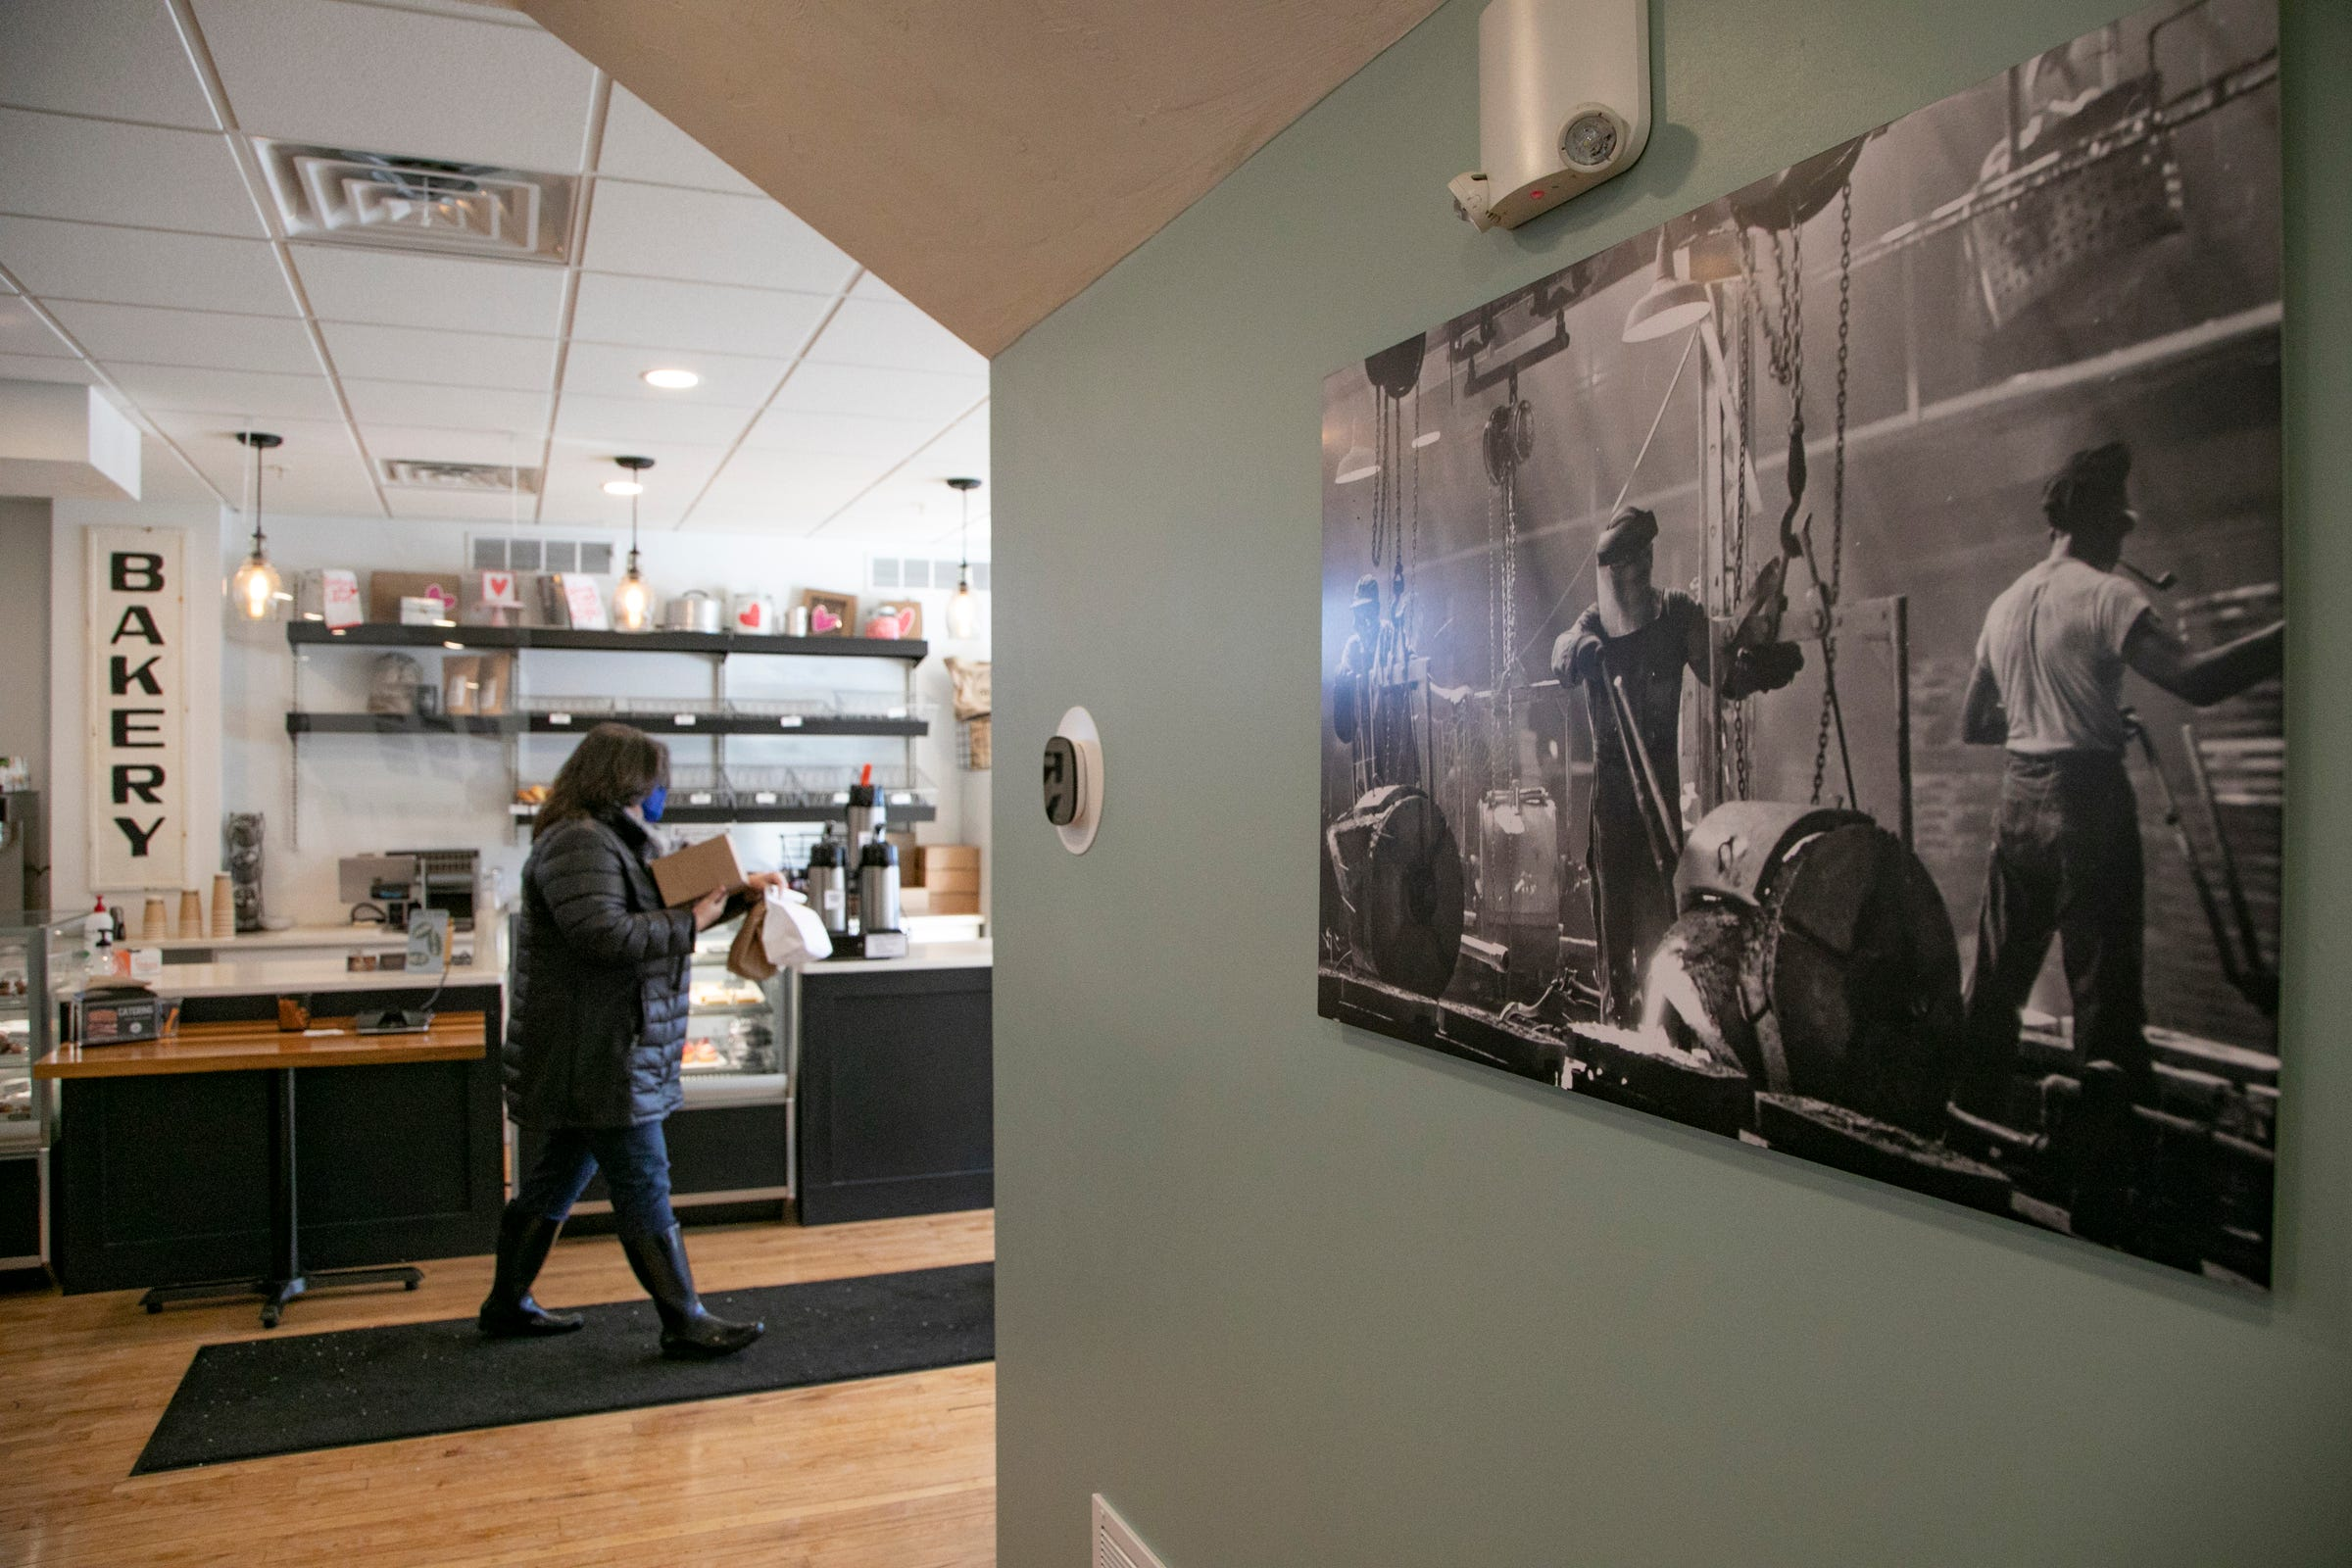 Historic photos of foundry workers in Albion hang on the walls of the Foundry Bakehouse and Deli in downtown Albion.